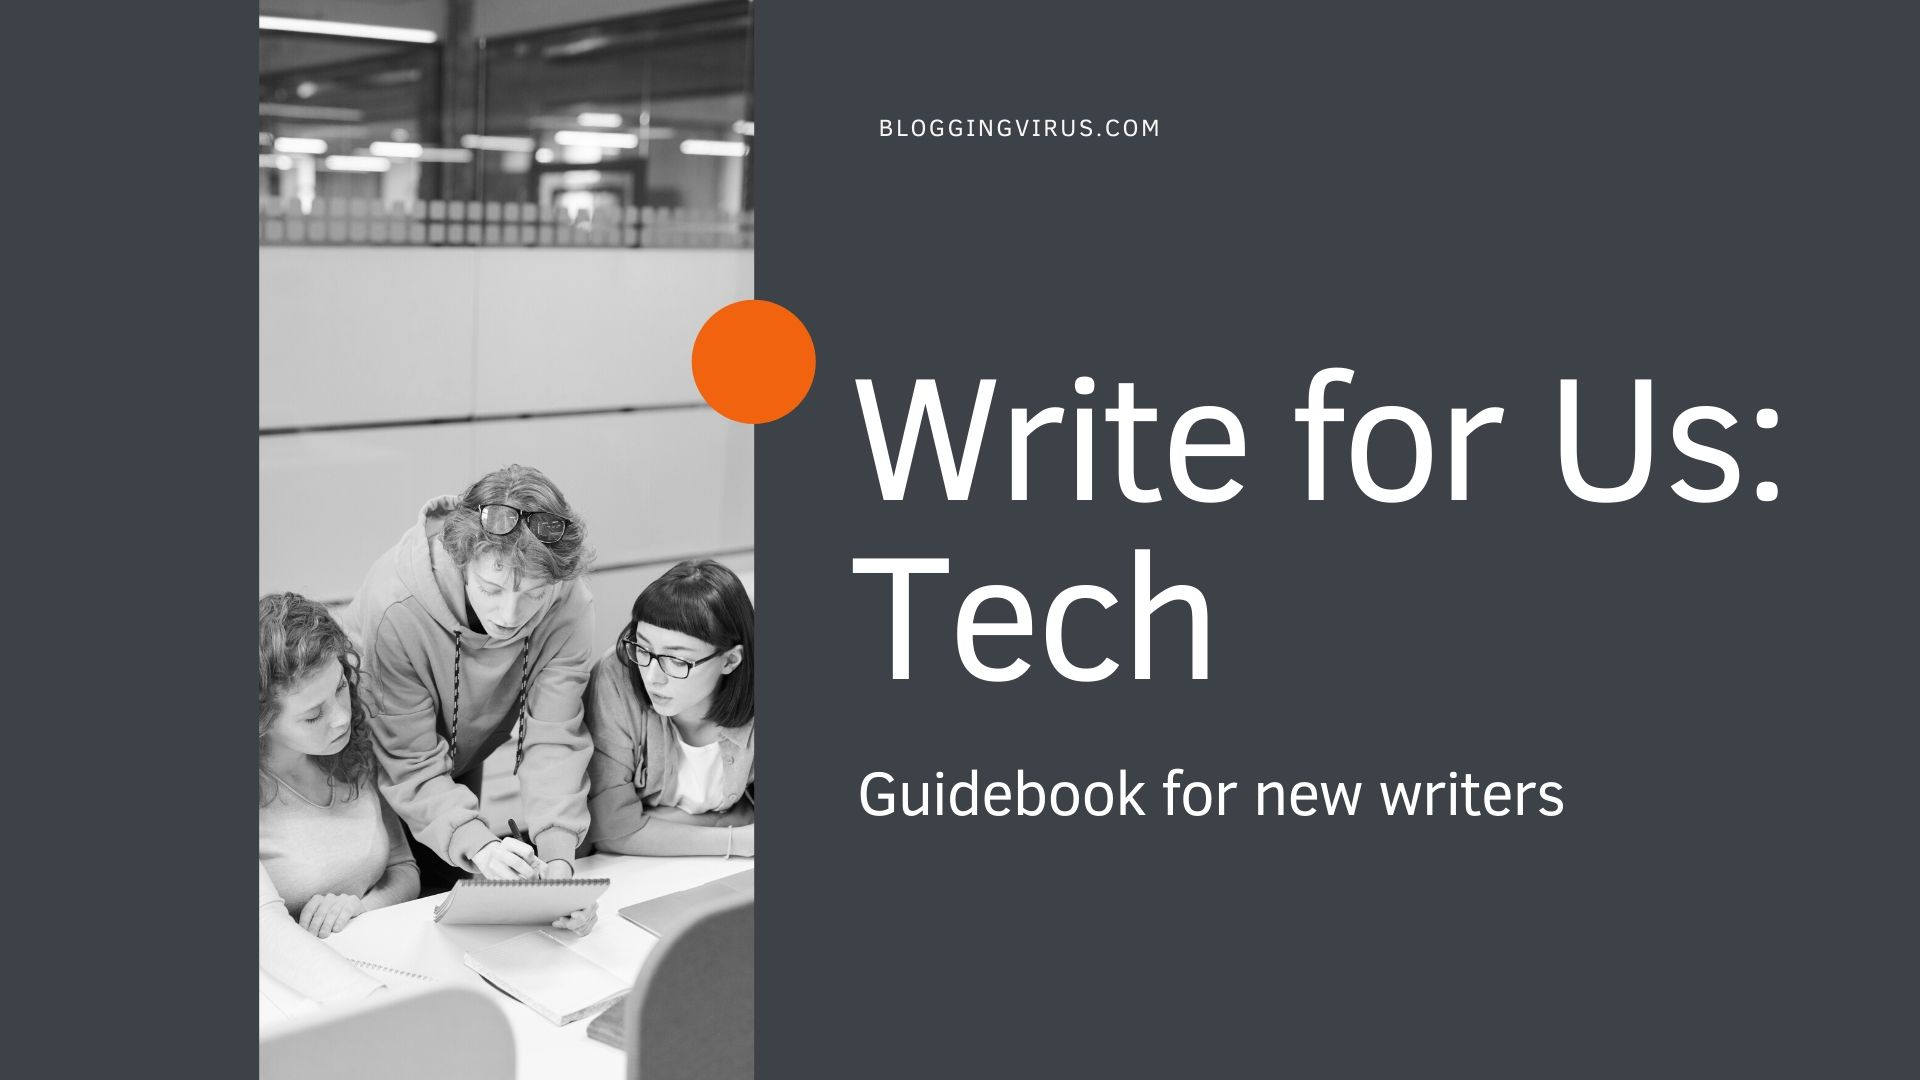 Write for Us: Tech